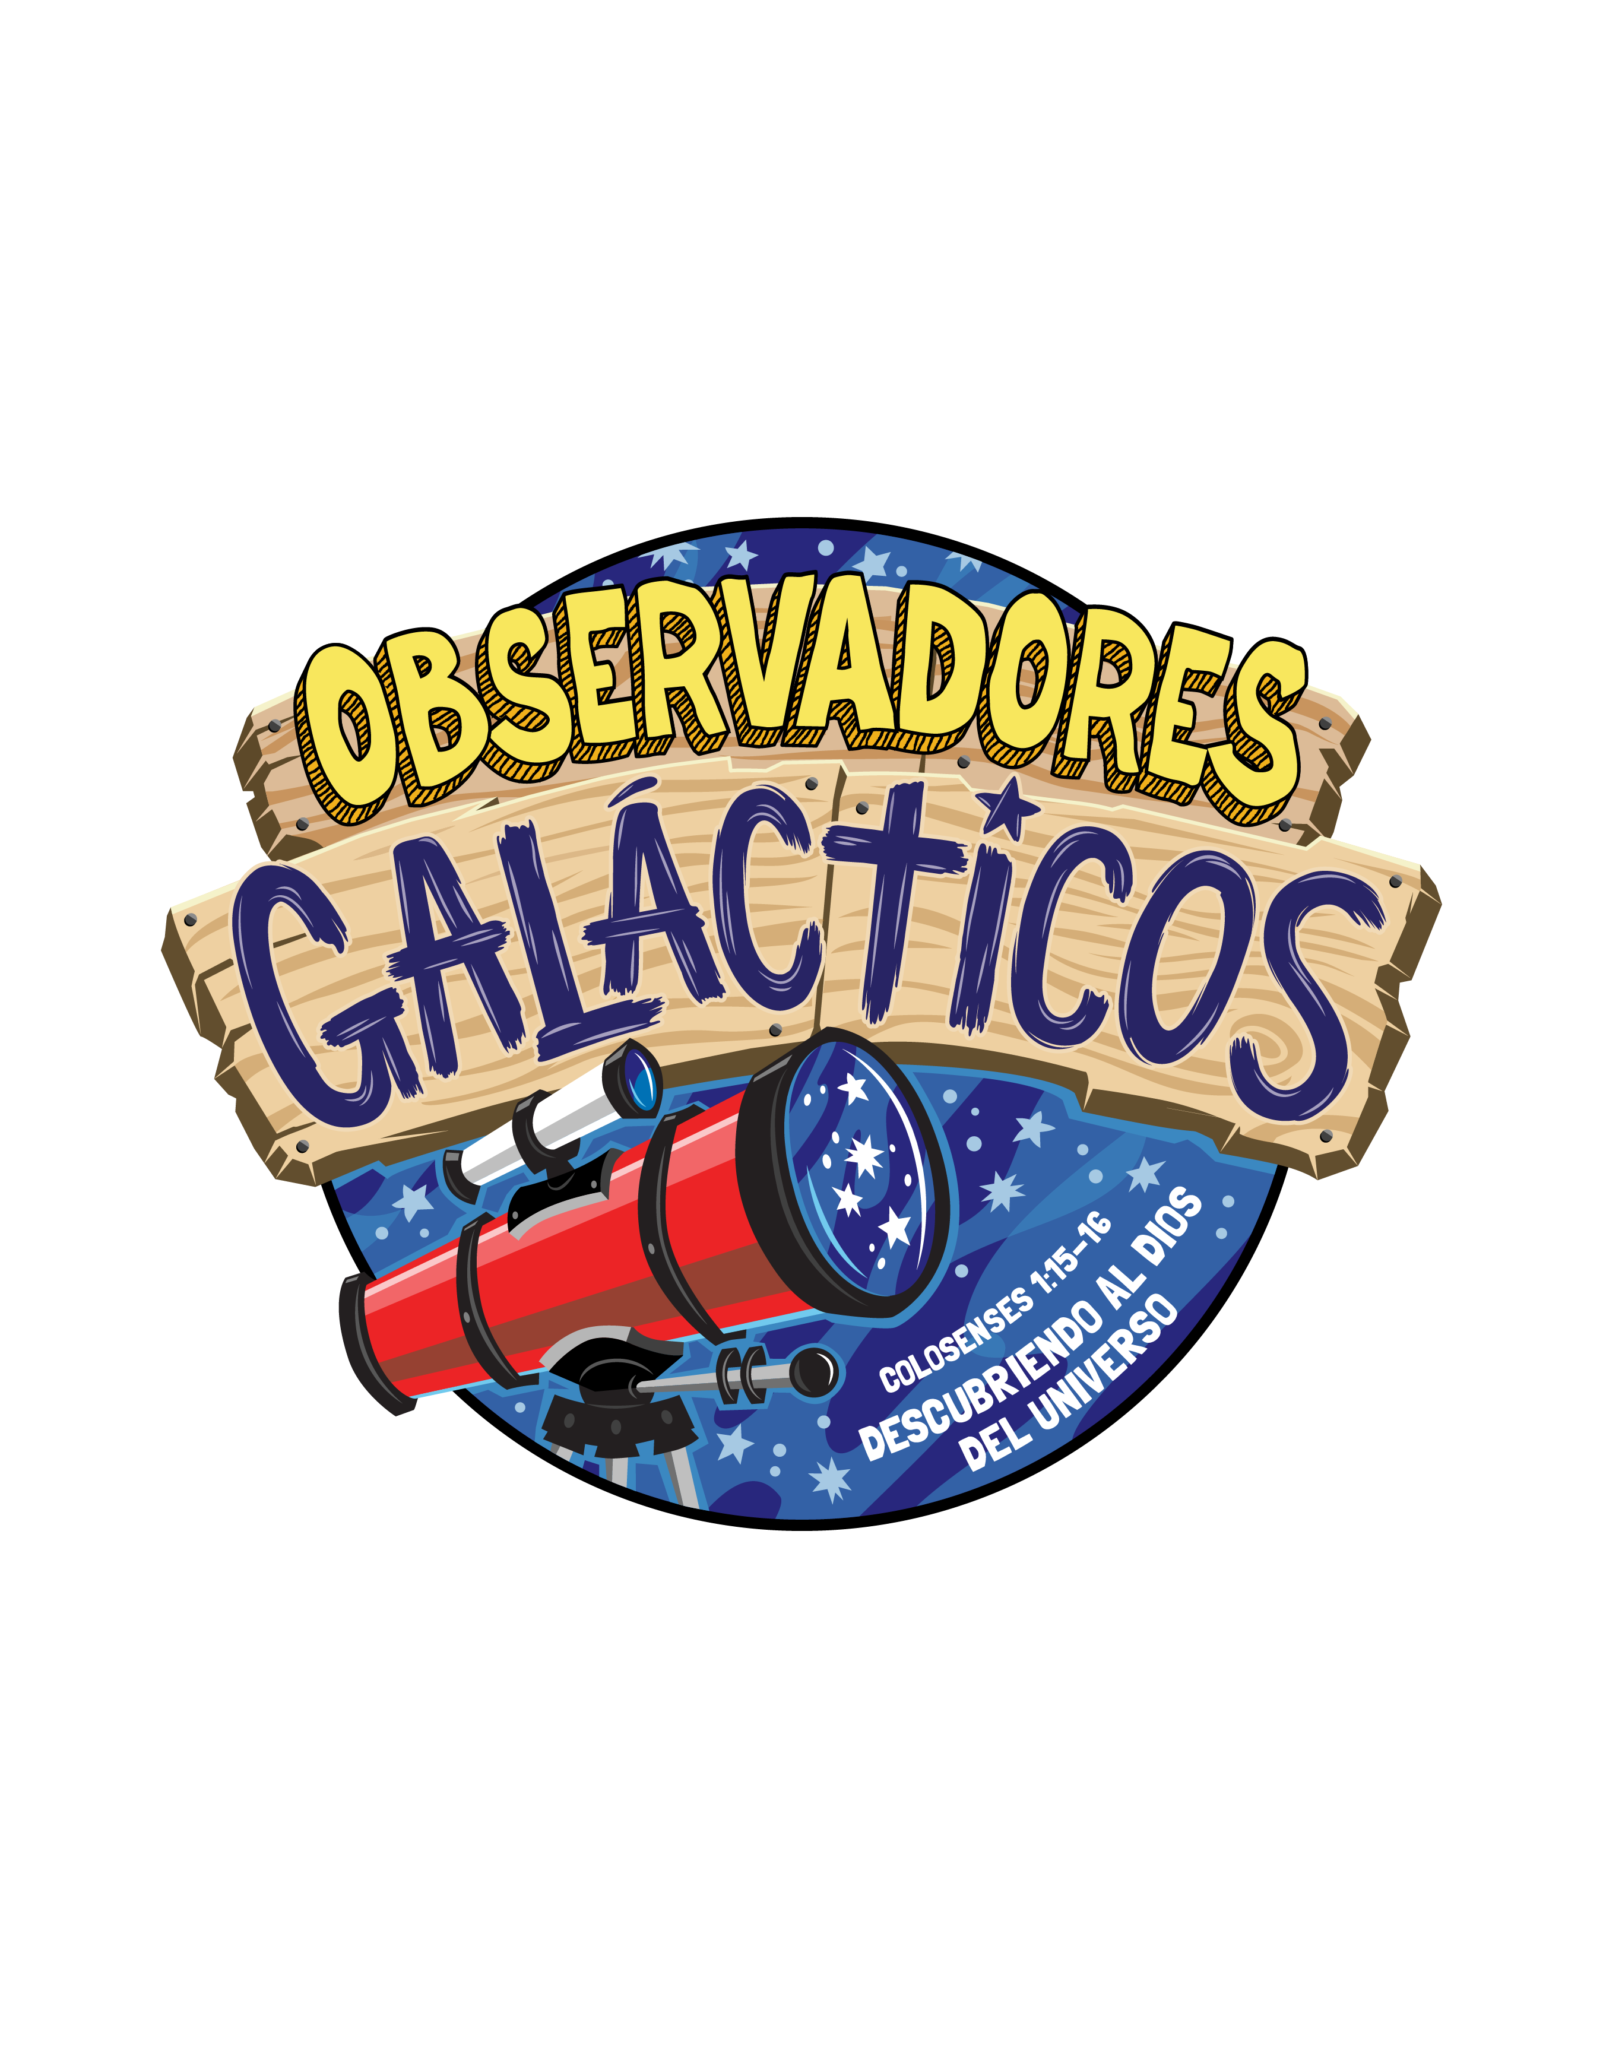 https://s3-us-west-1.amazonaws.com/vbs2016/wp-content/uploads/2014/08/13142223/Spanish-Logo.png